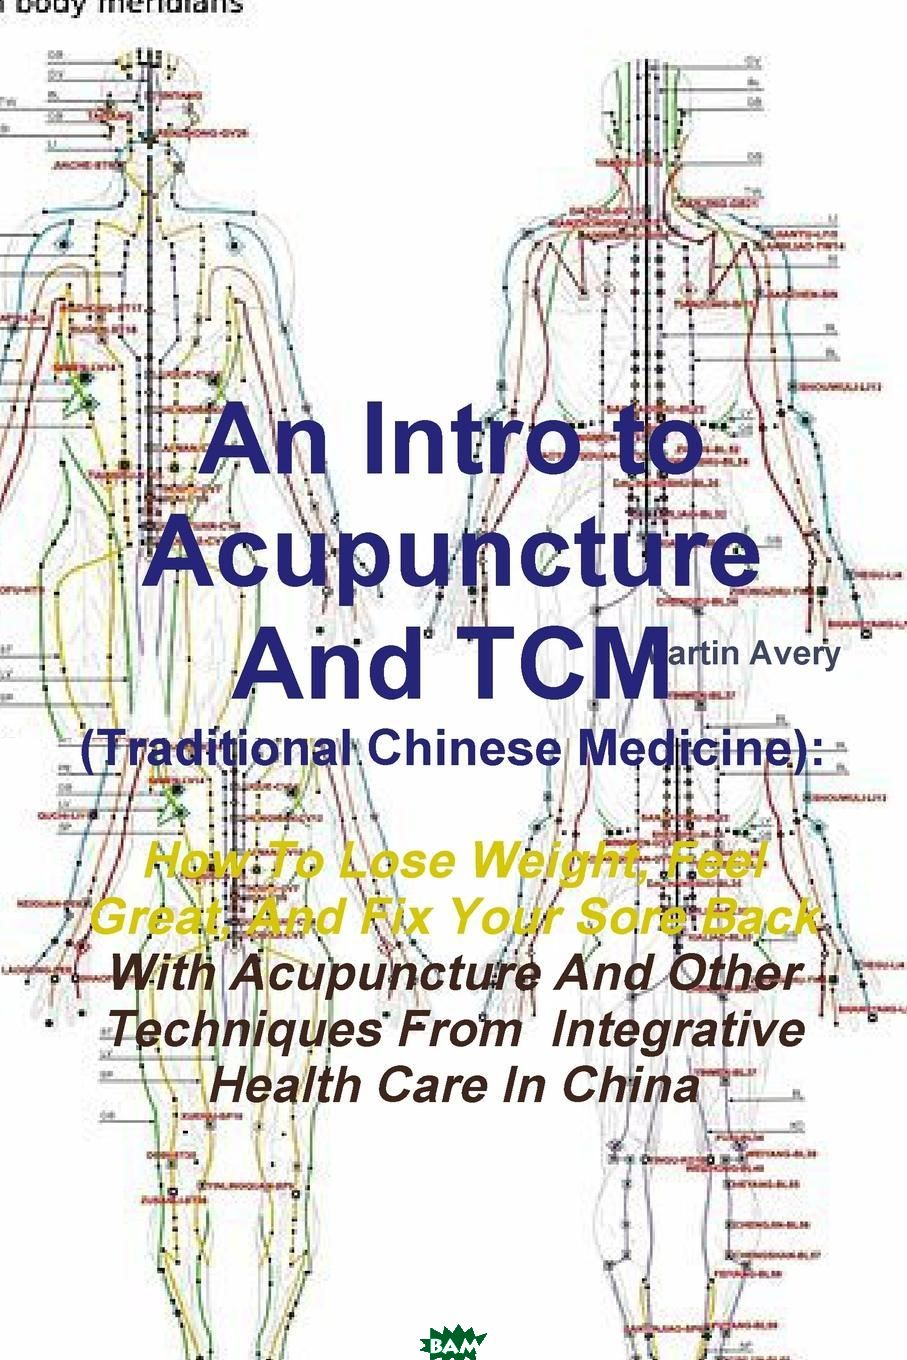 An Intro to Acupuncture and Tcm (Traditional Chinese Medicine). How to Lose Weight, Feel Great, and Fix Your Sore Back with Acupuncture and Other Tec